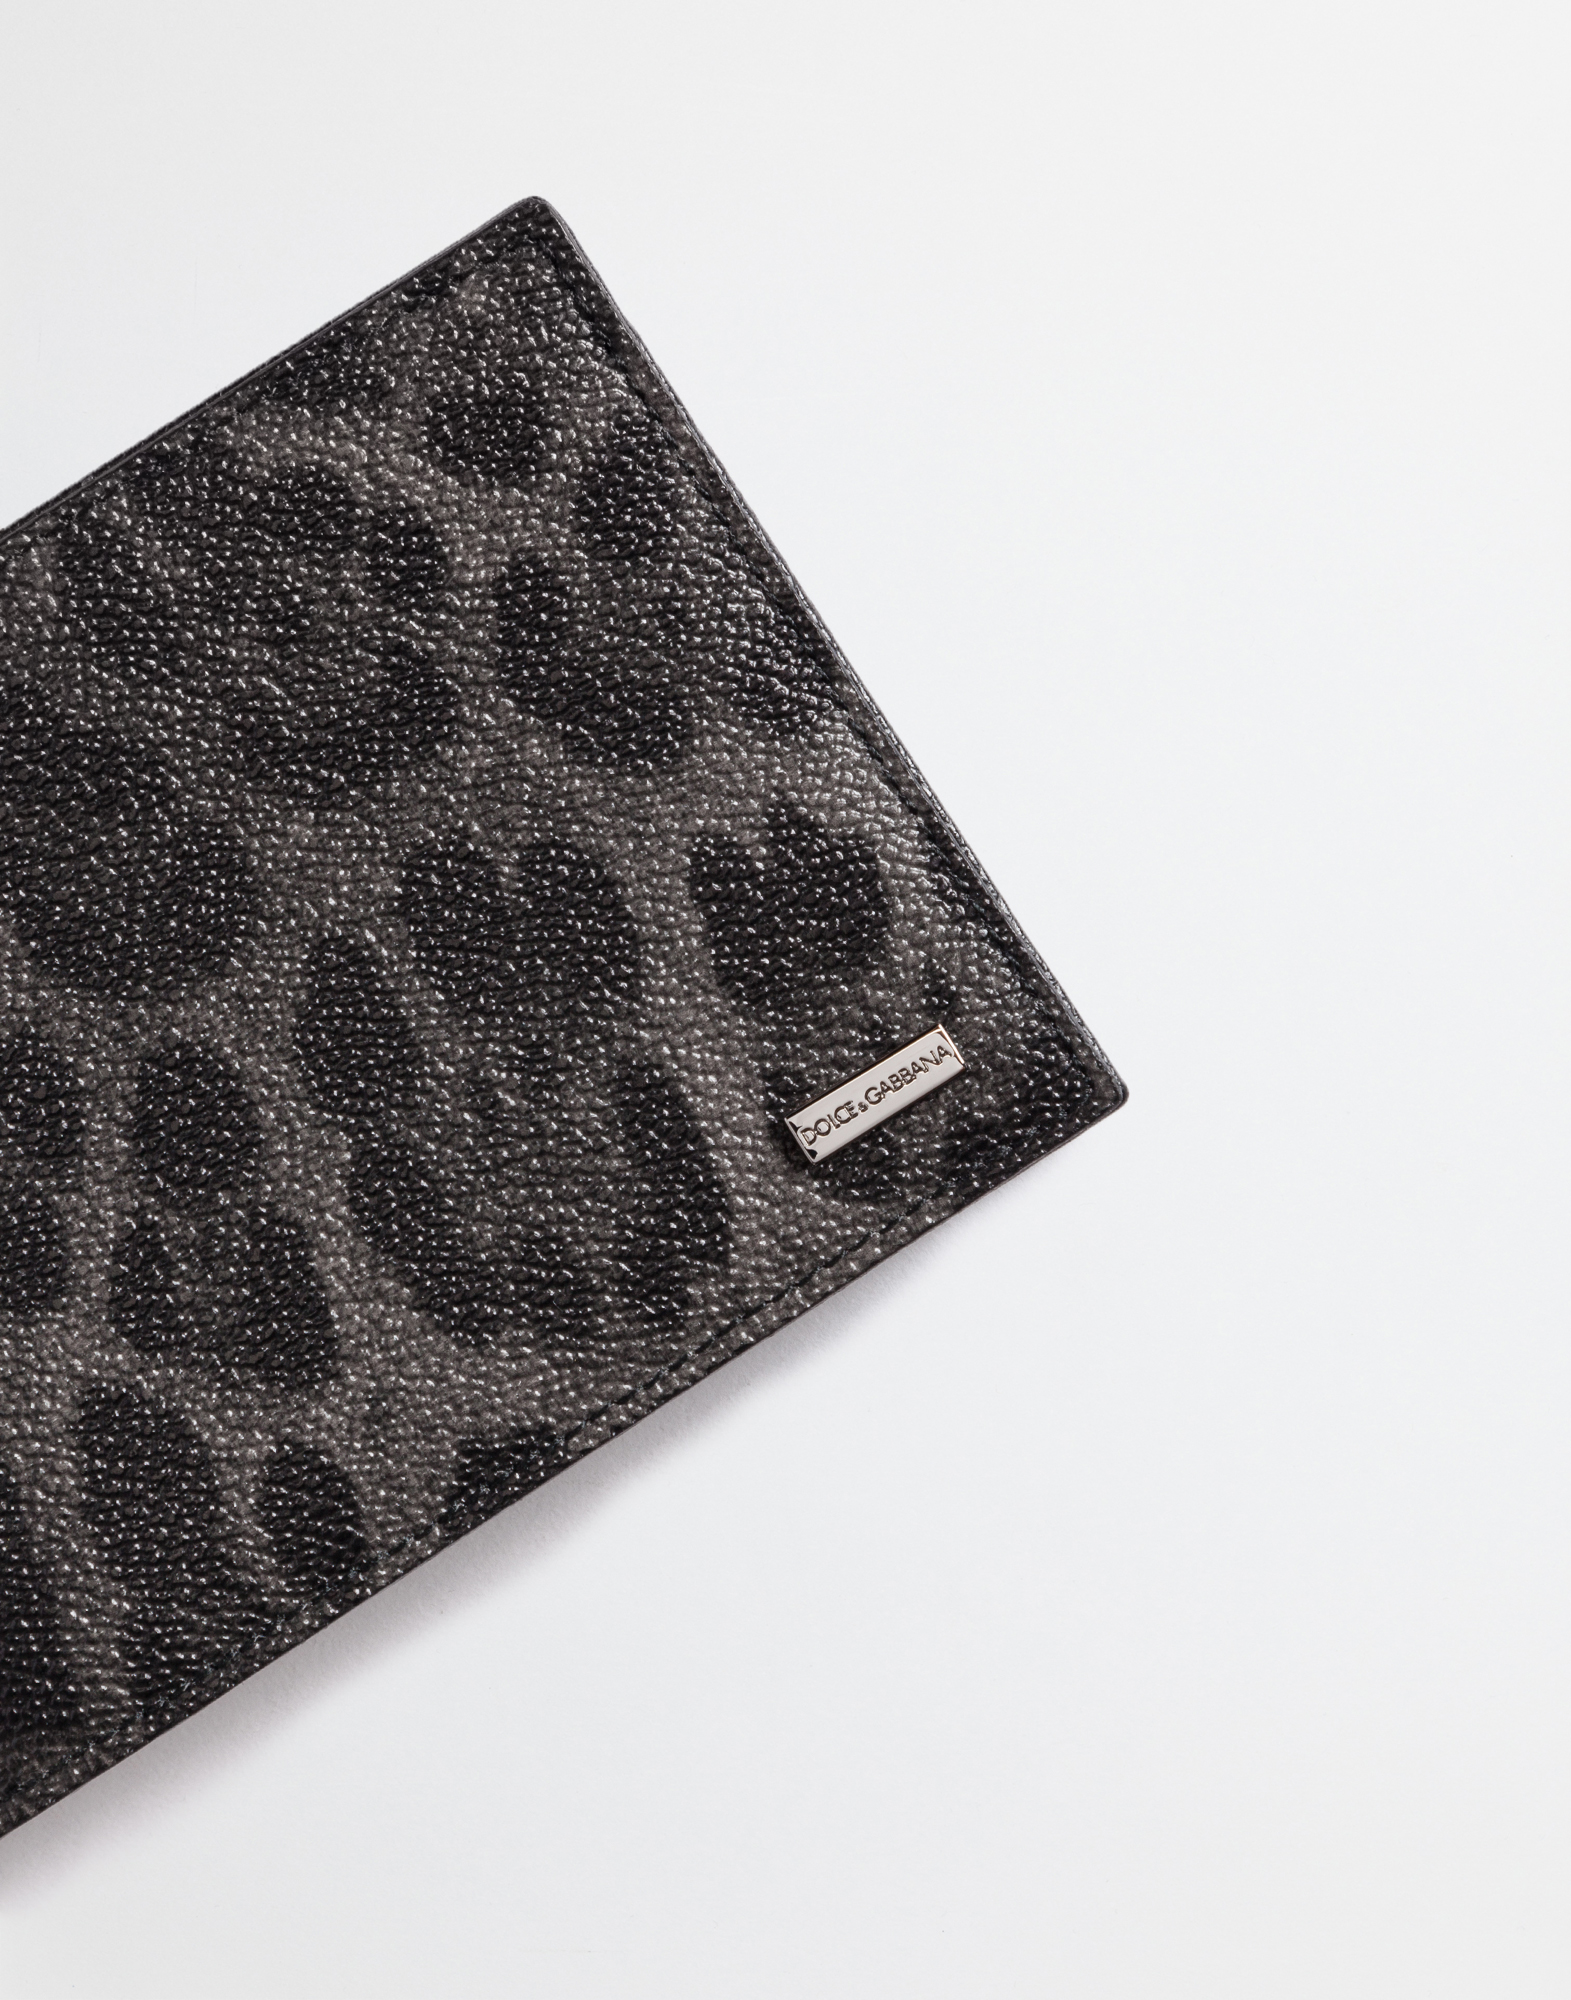 Dolce&Gabbana LEOPARD TEXTURED LEATHER WALLET